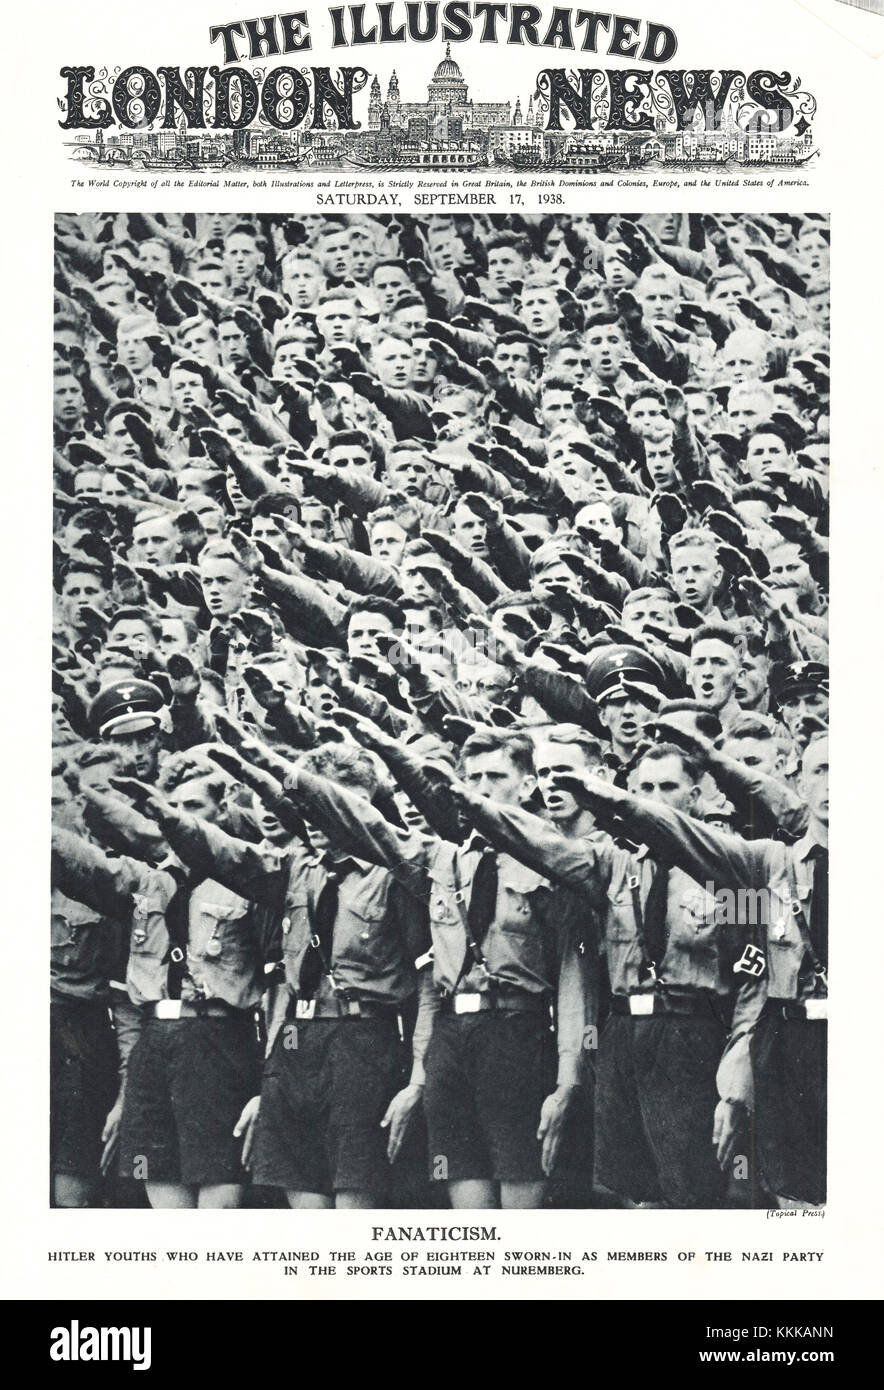 1938 UK Magazine Illustration Hitler Youth at Nuremberg - Stock Image